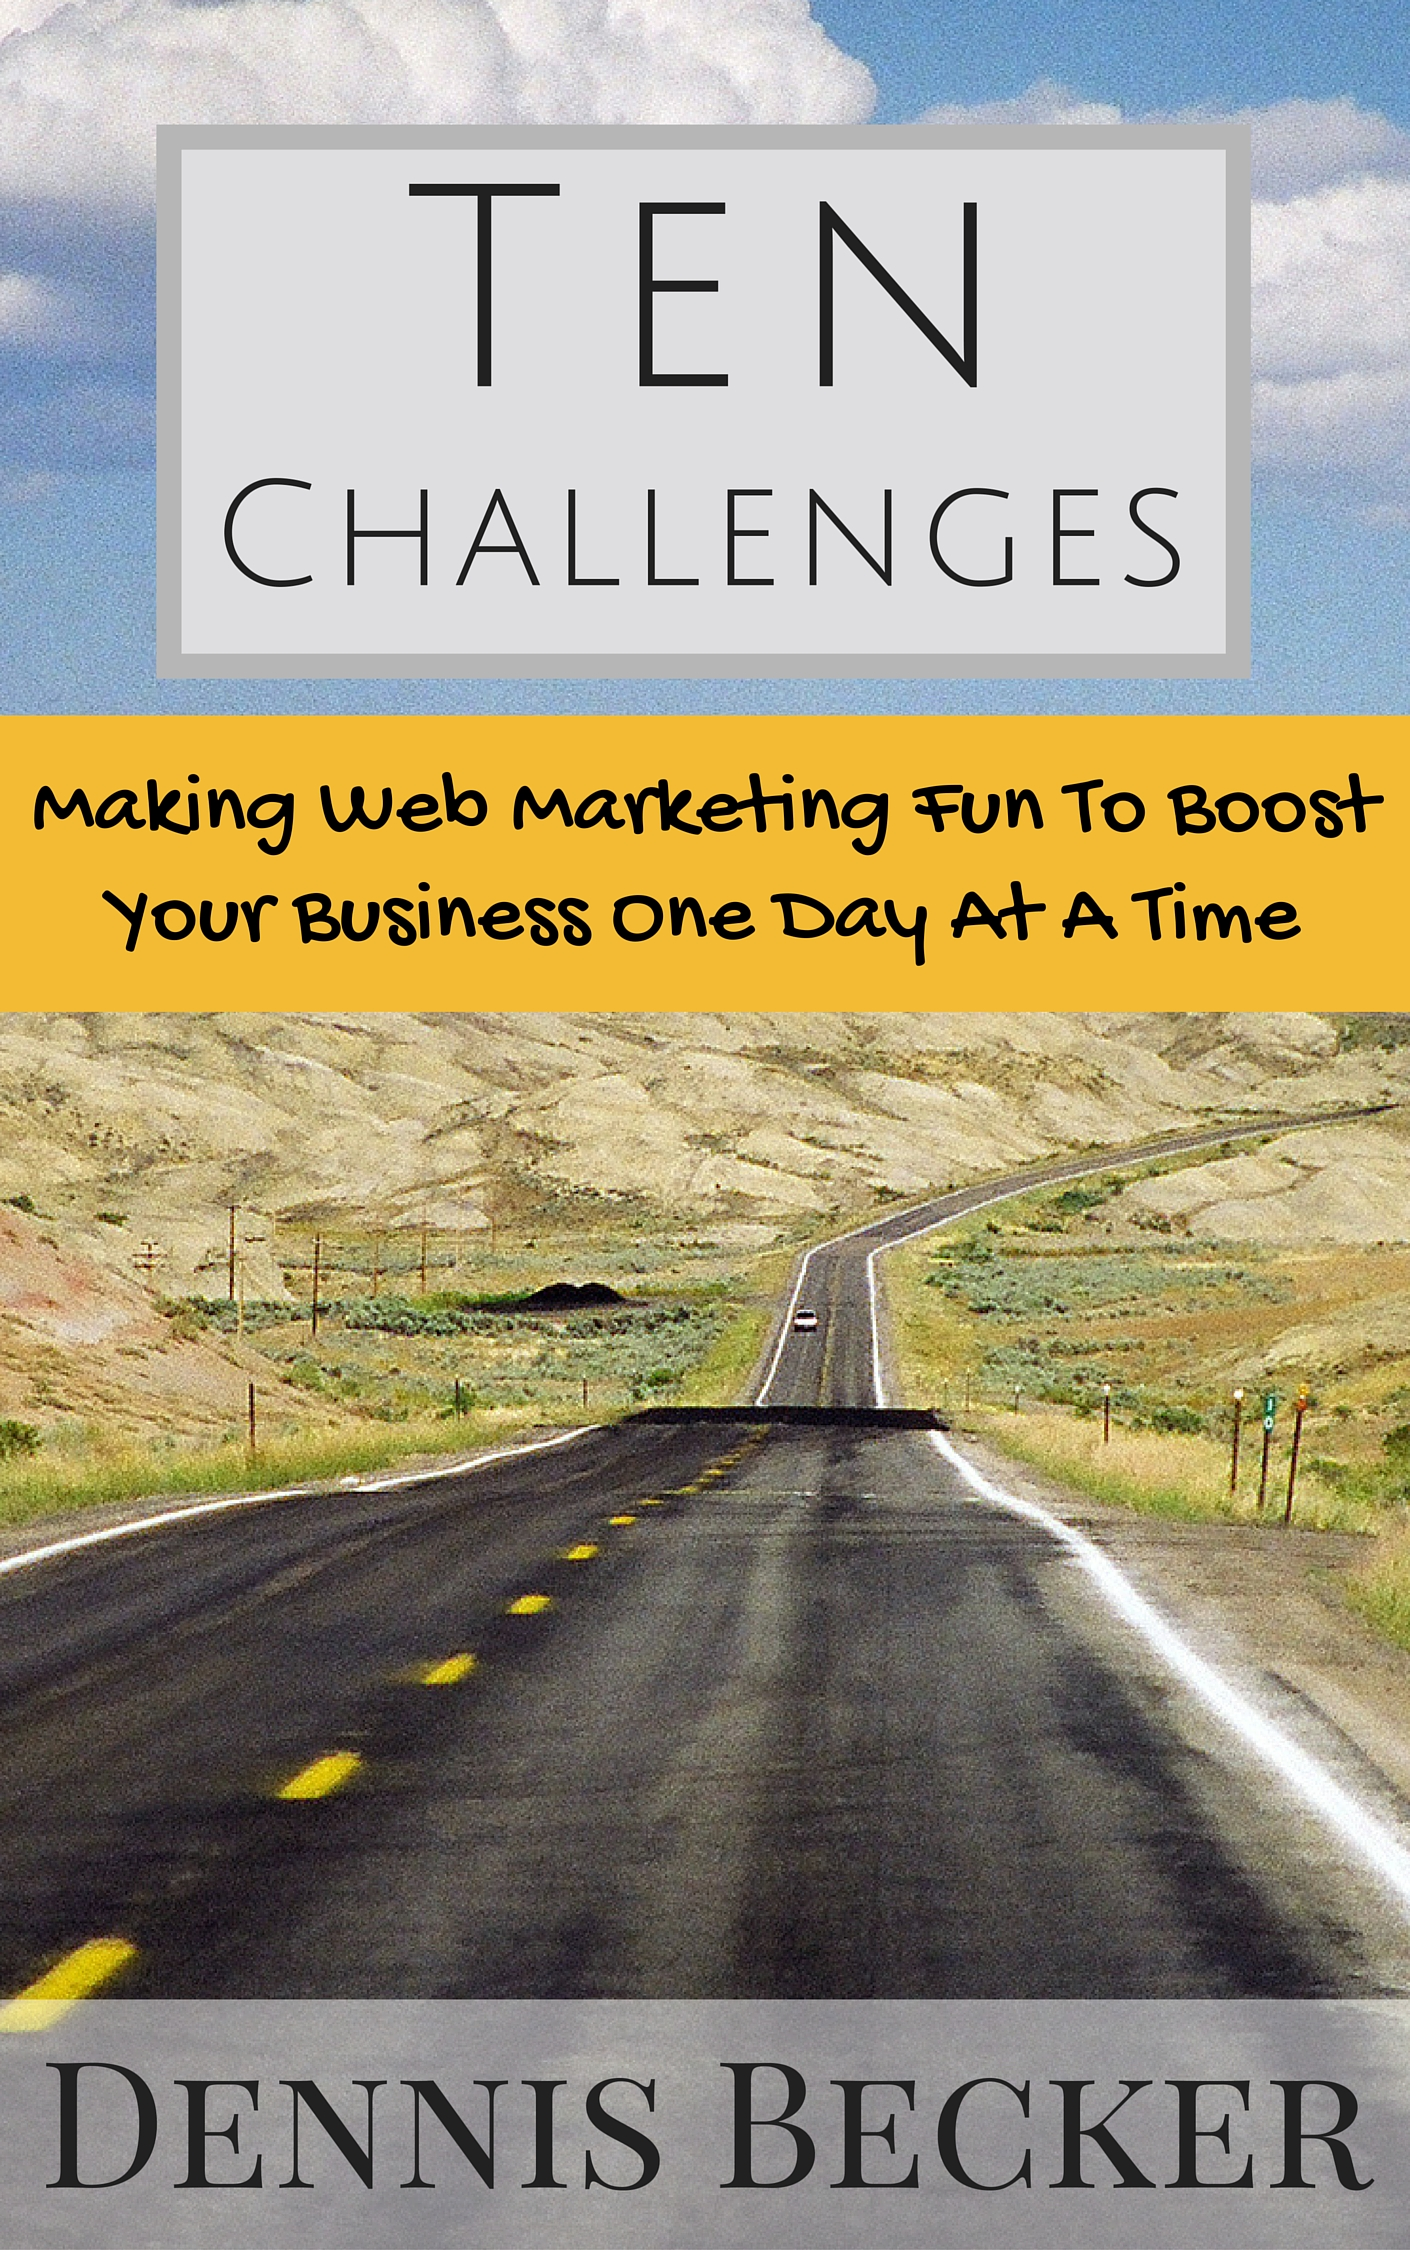 Ten Challenges: Making Web Marketing Fun To Boost Your